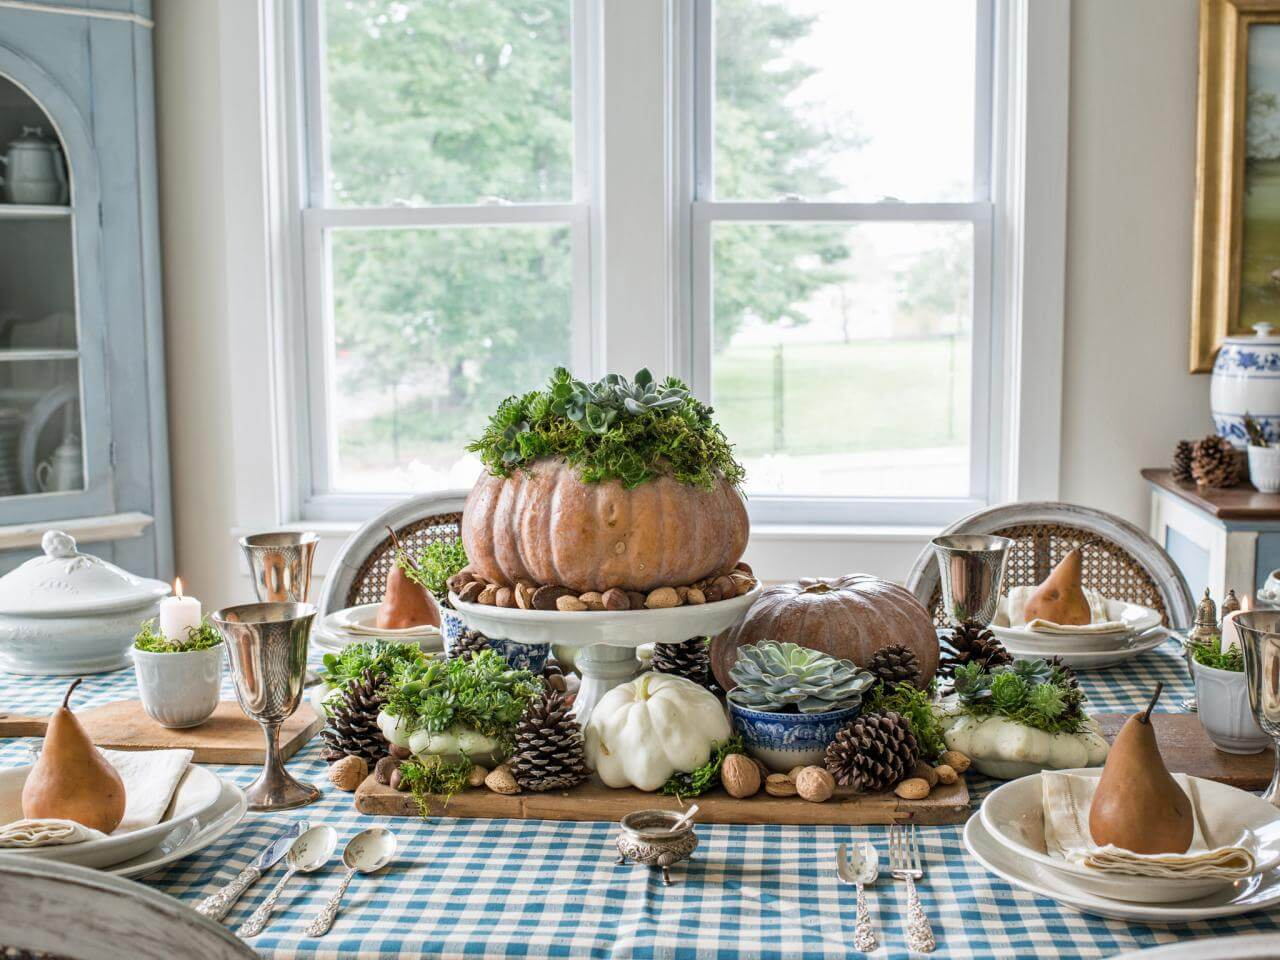 Fall decor for the dining room table